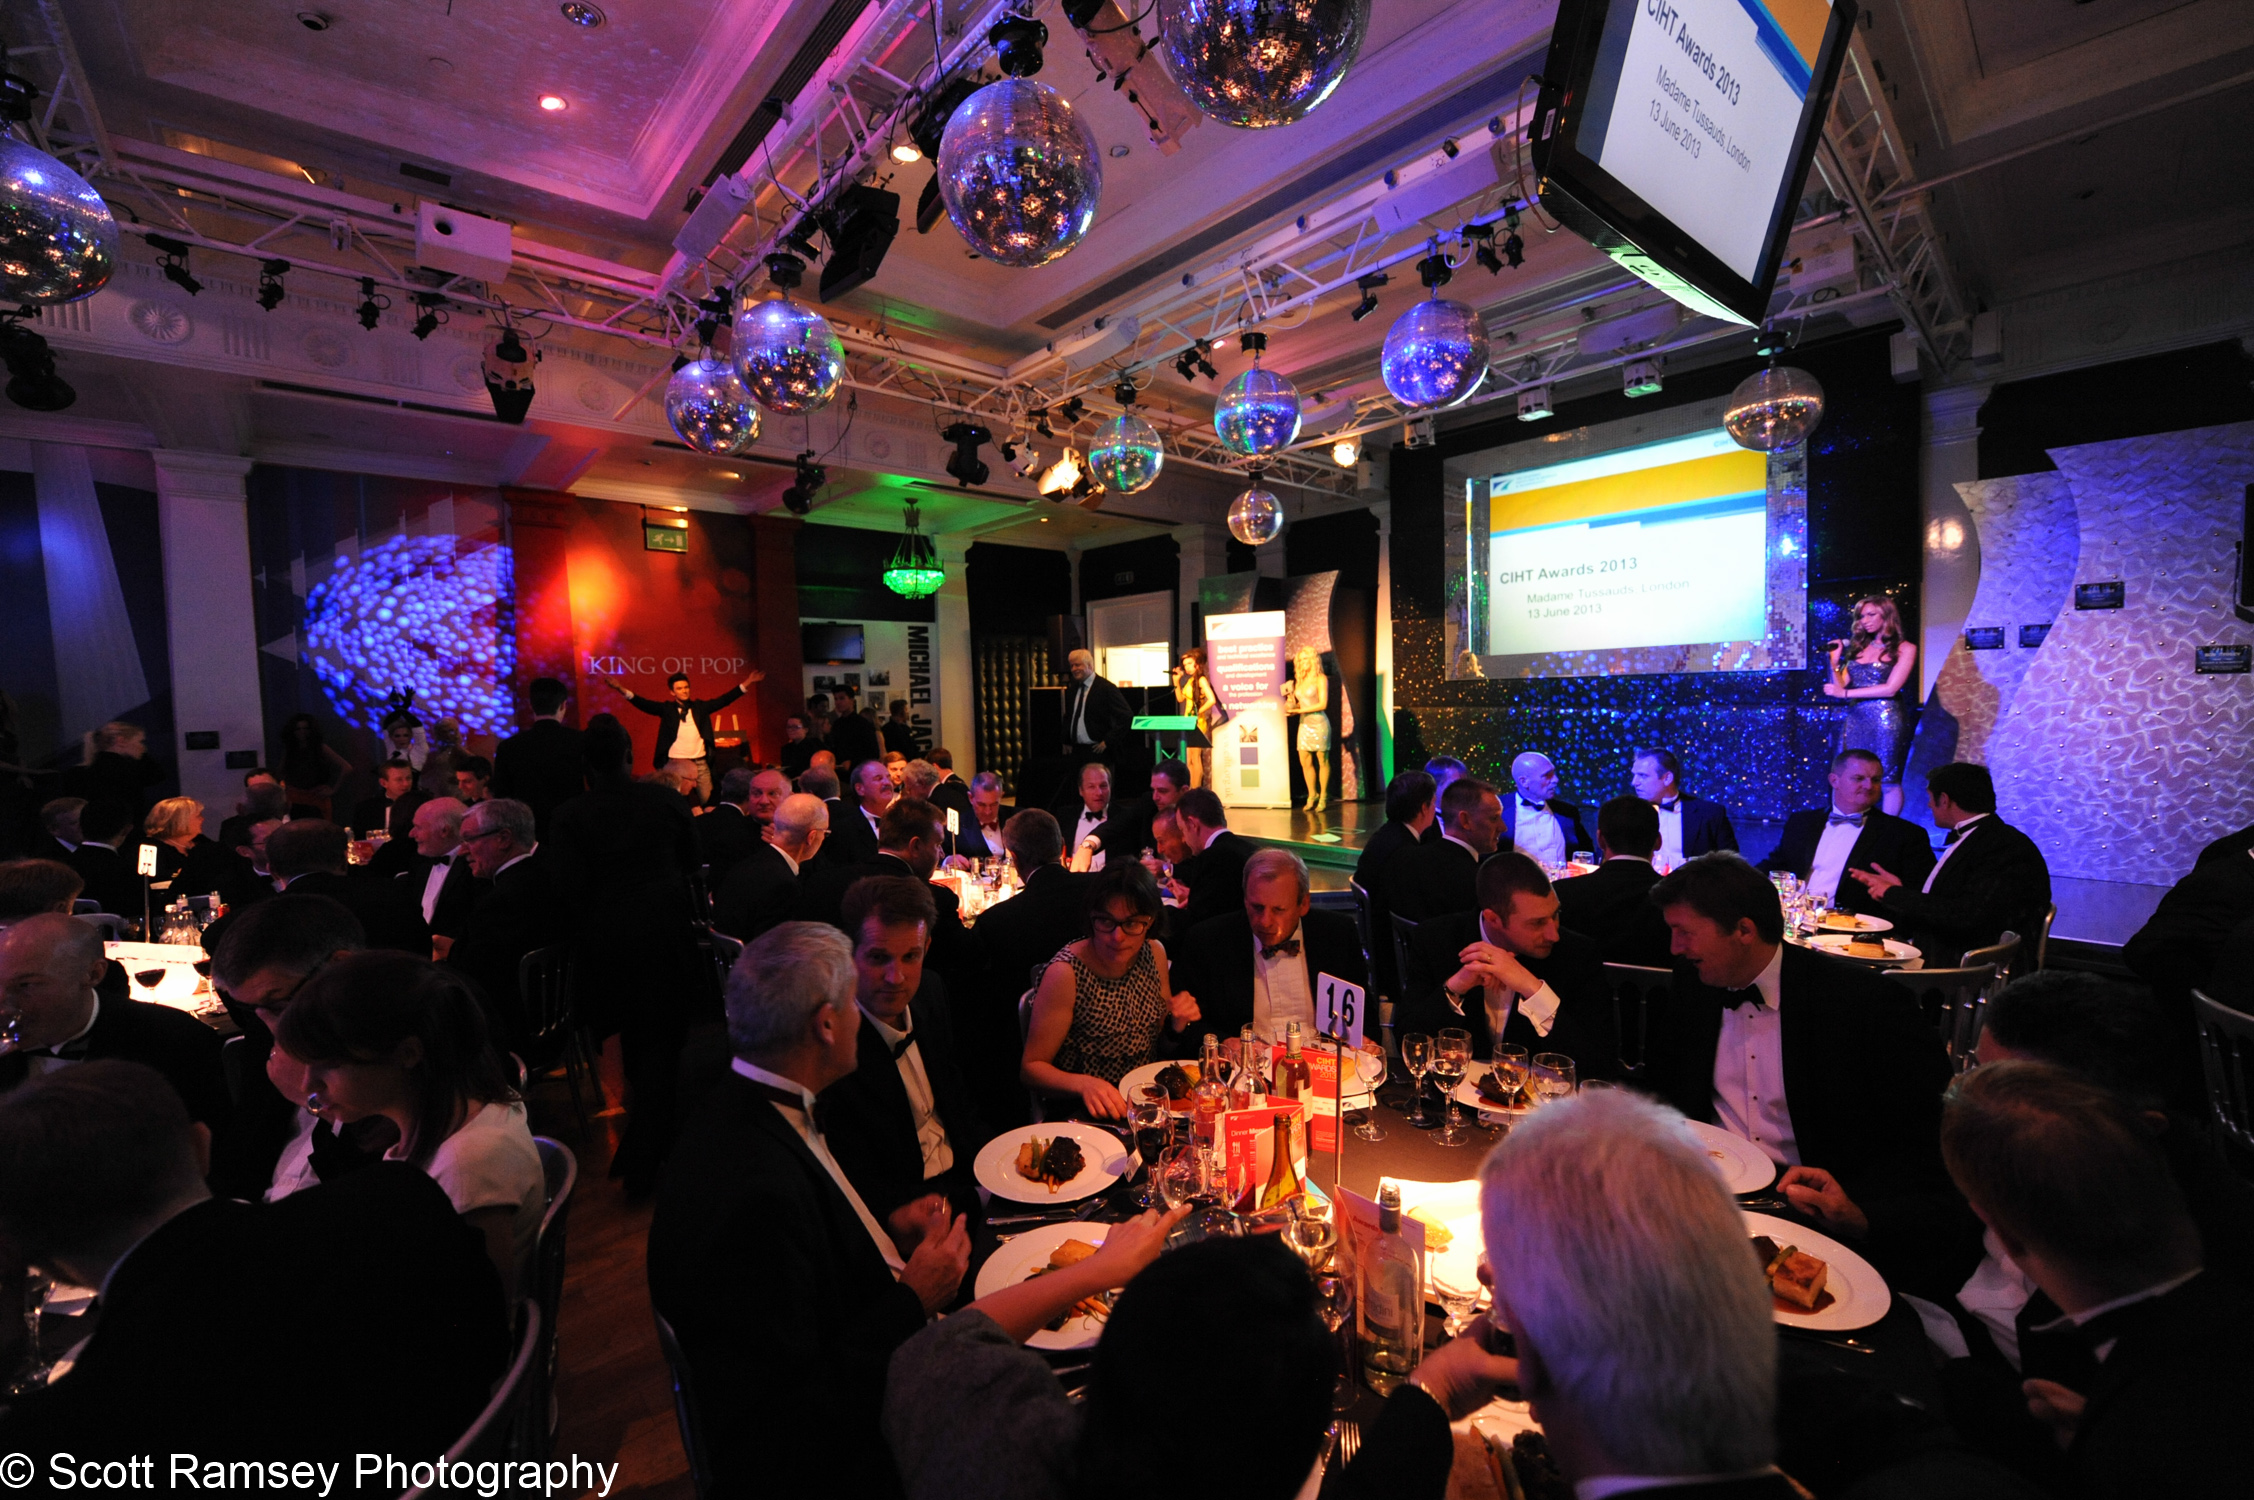 Guests enjoy an awards dinner in theWorld Stage Ballroomat Madame Tussauds in London.